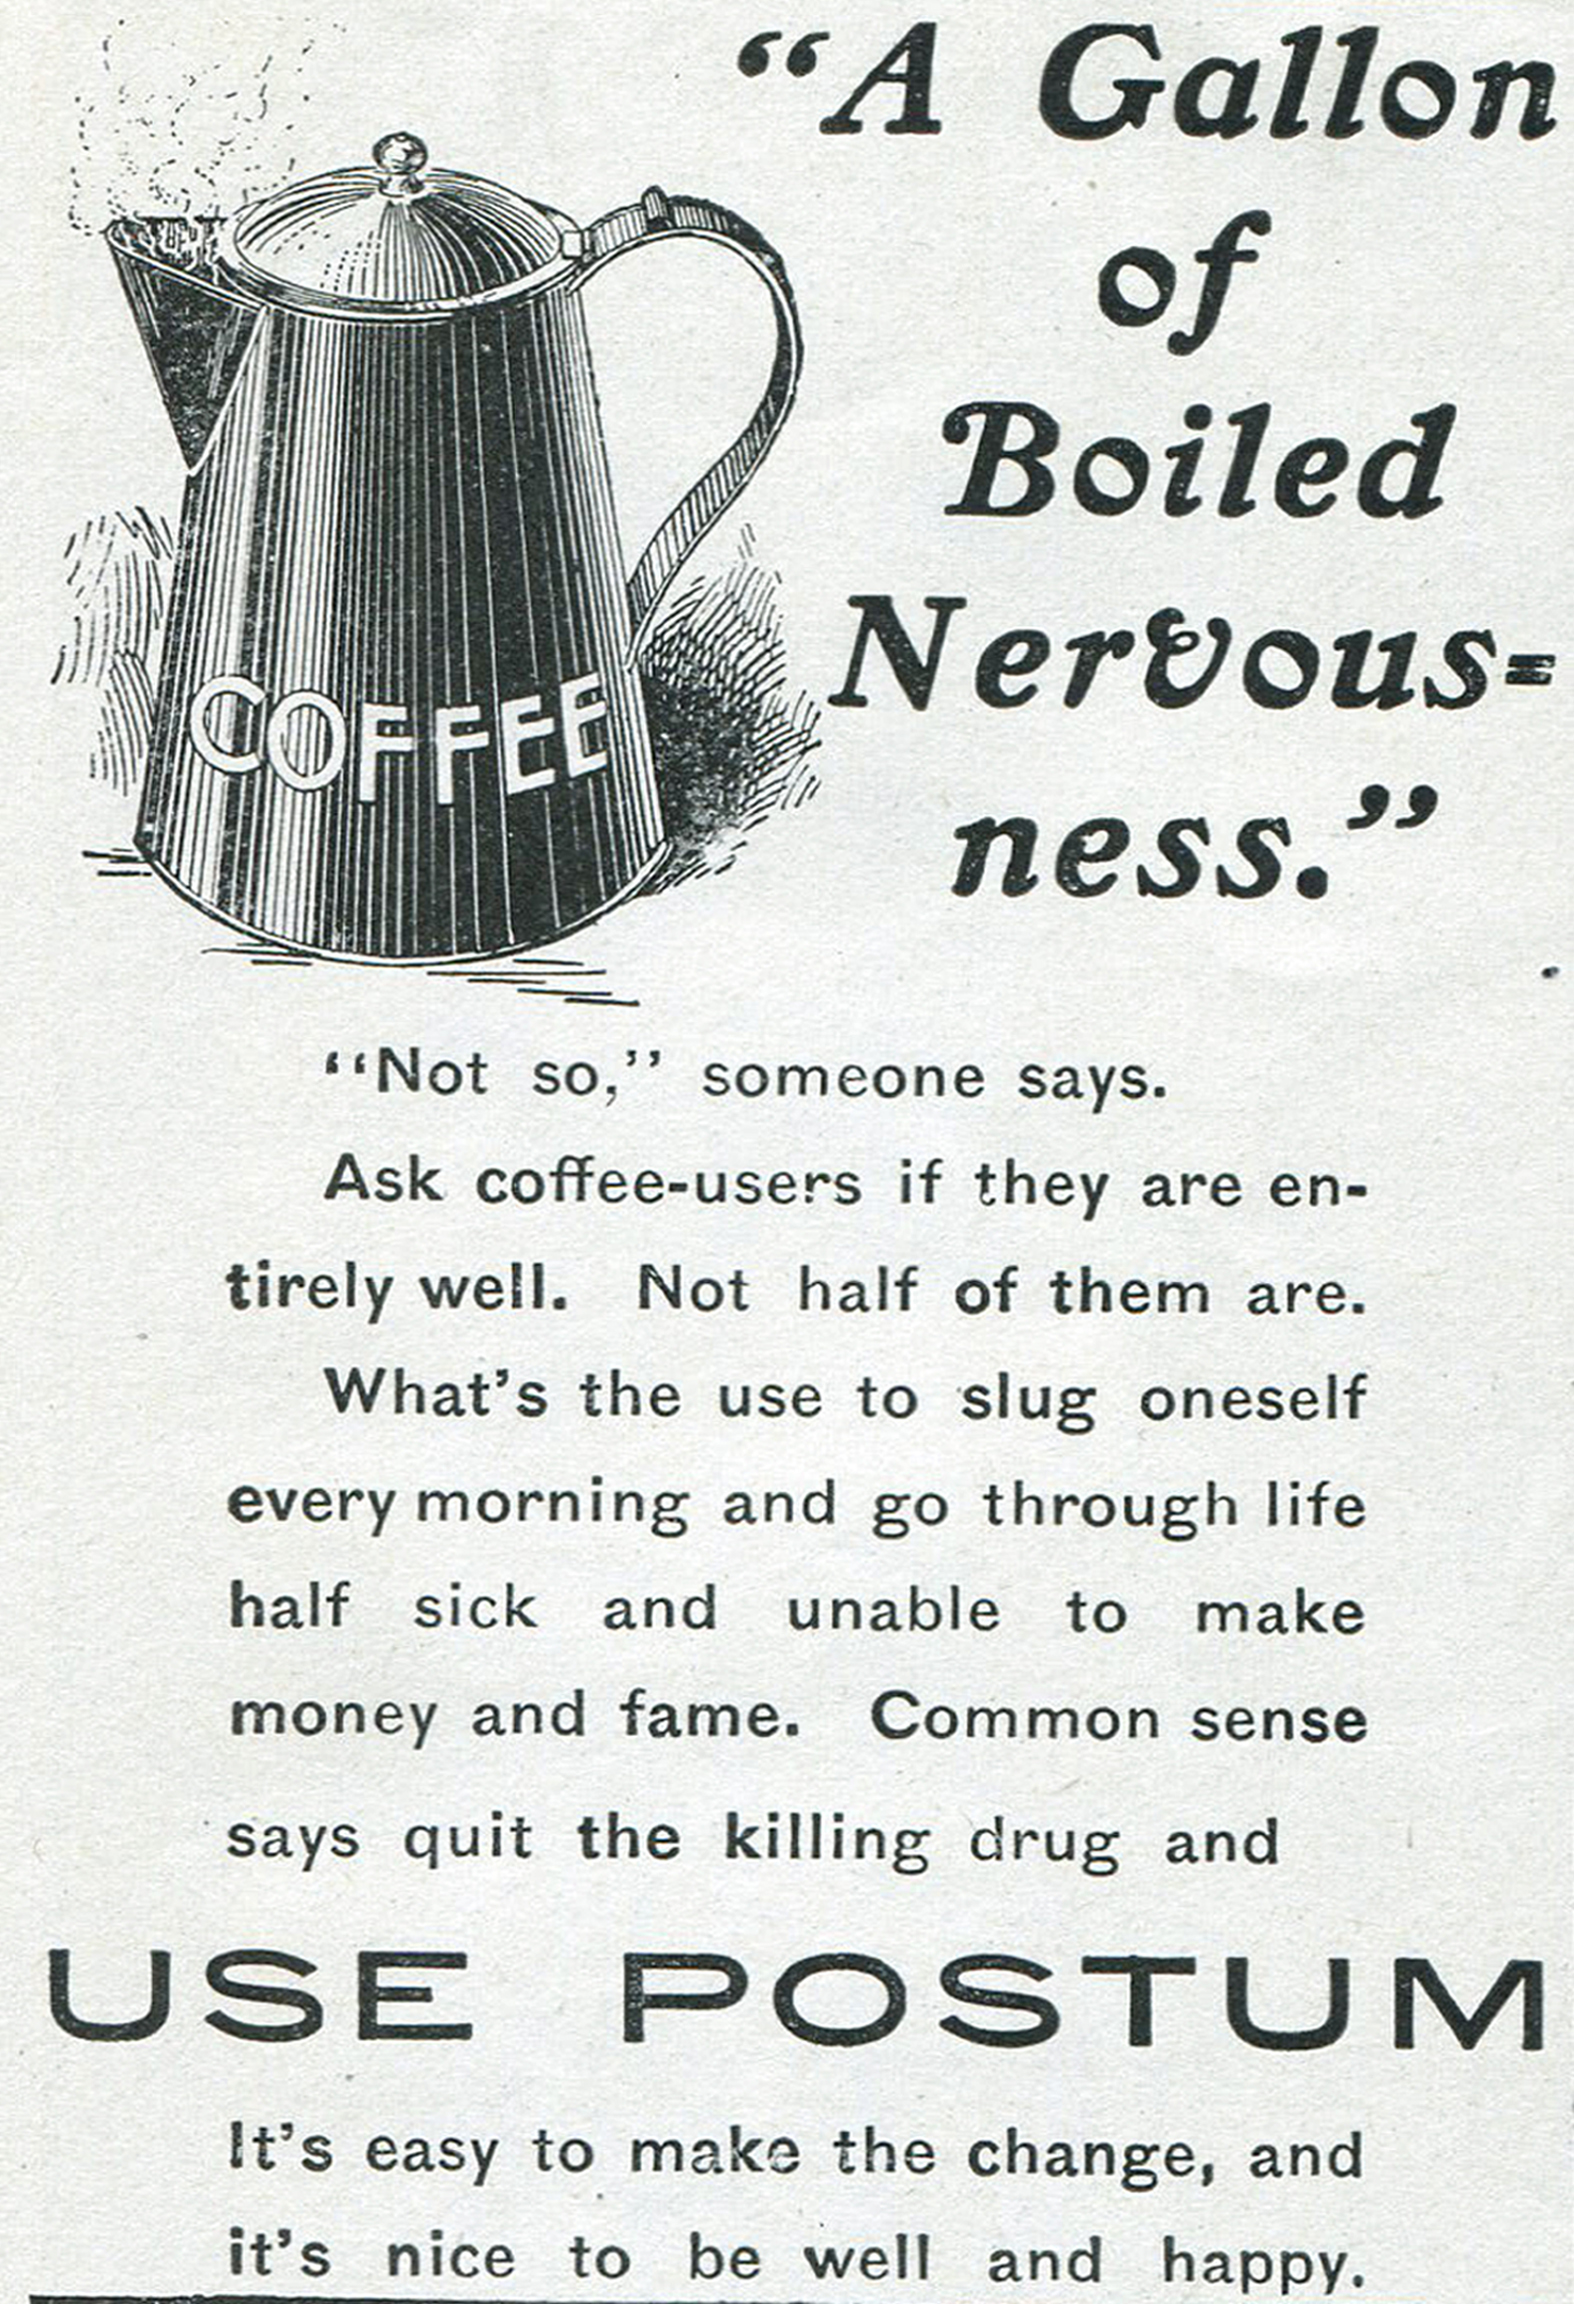 A 1902 advertisement for Postum.